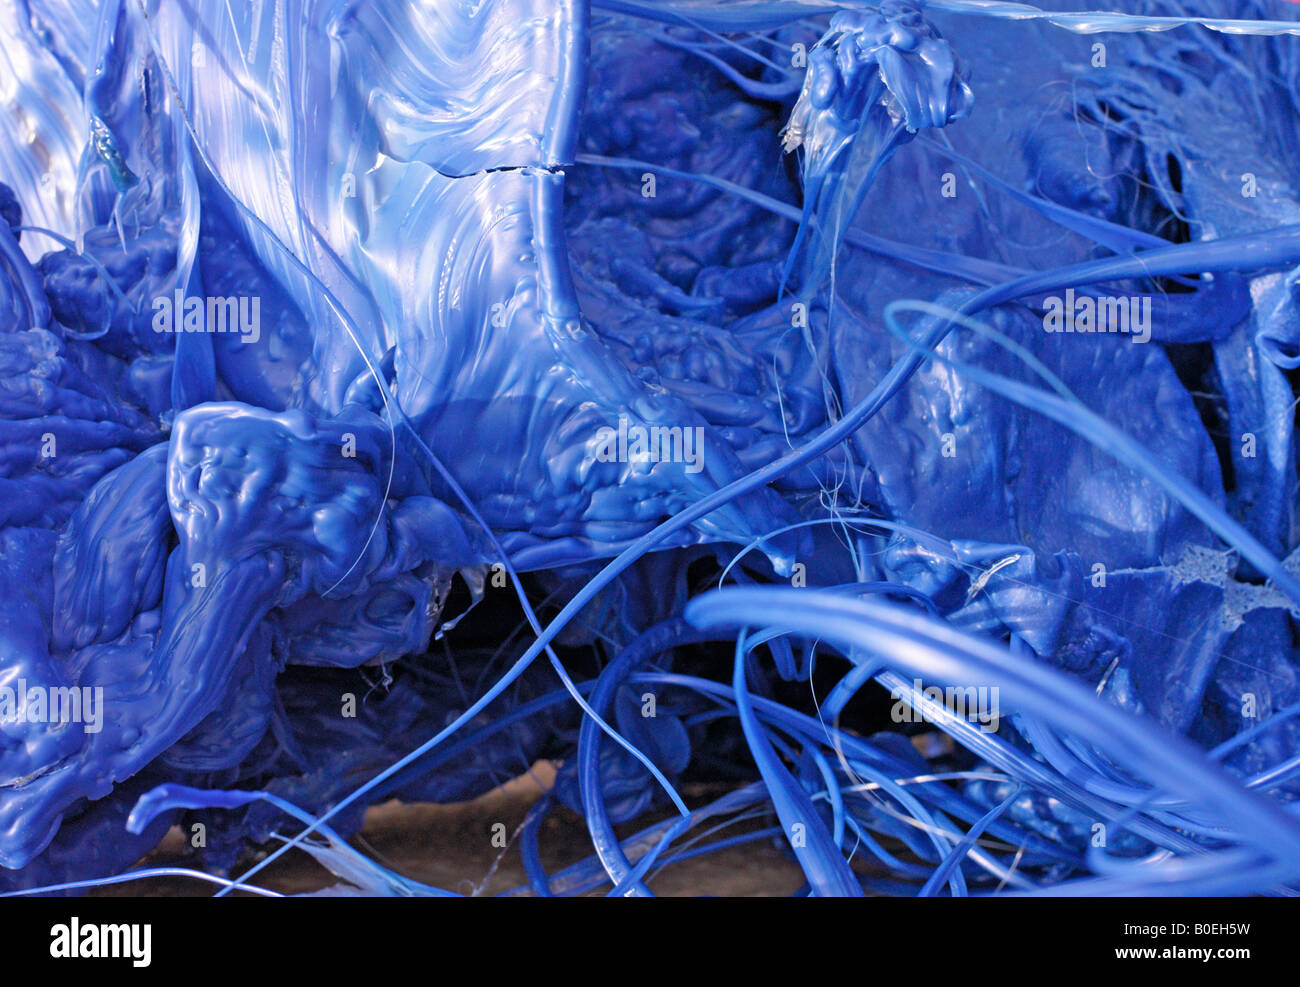 melted plastic waste - Stock Image